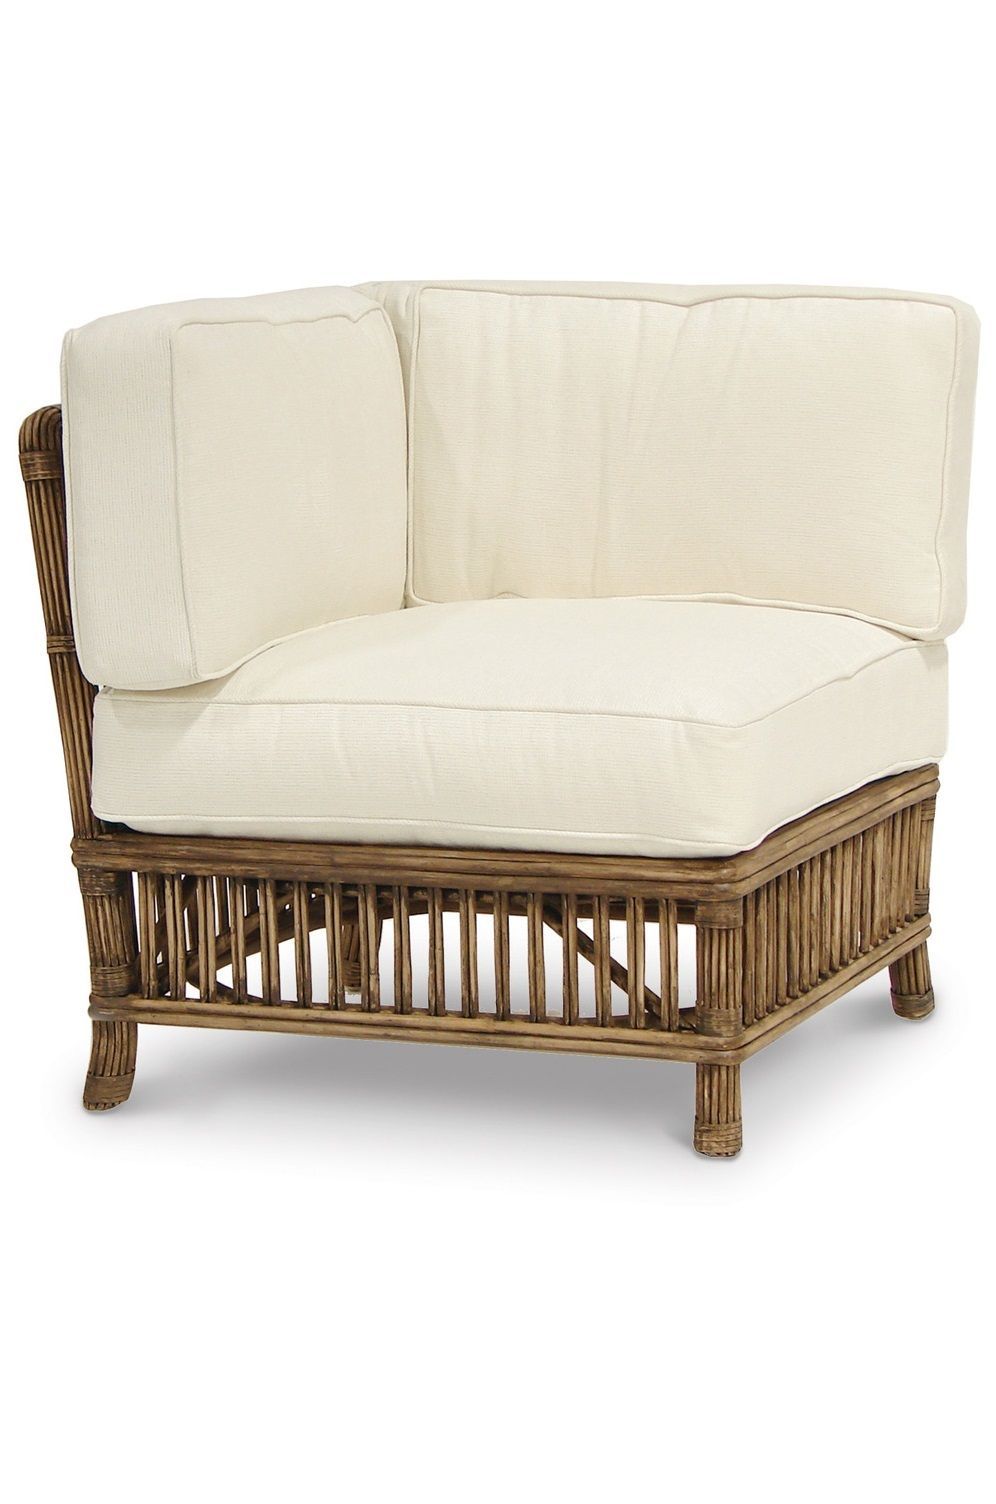 Patio Furniture Supplies Near Me